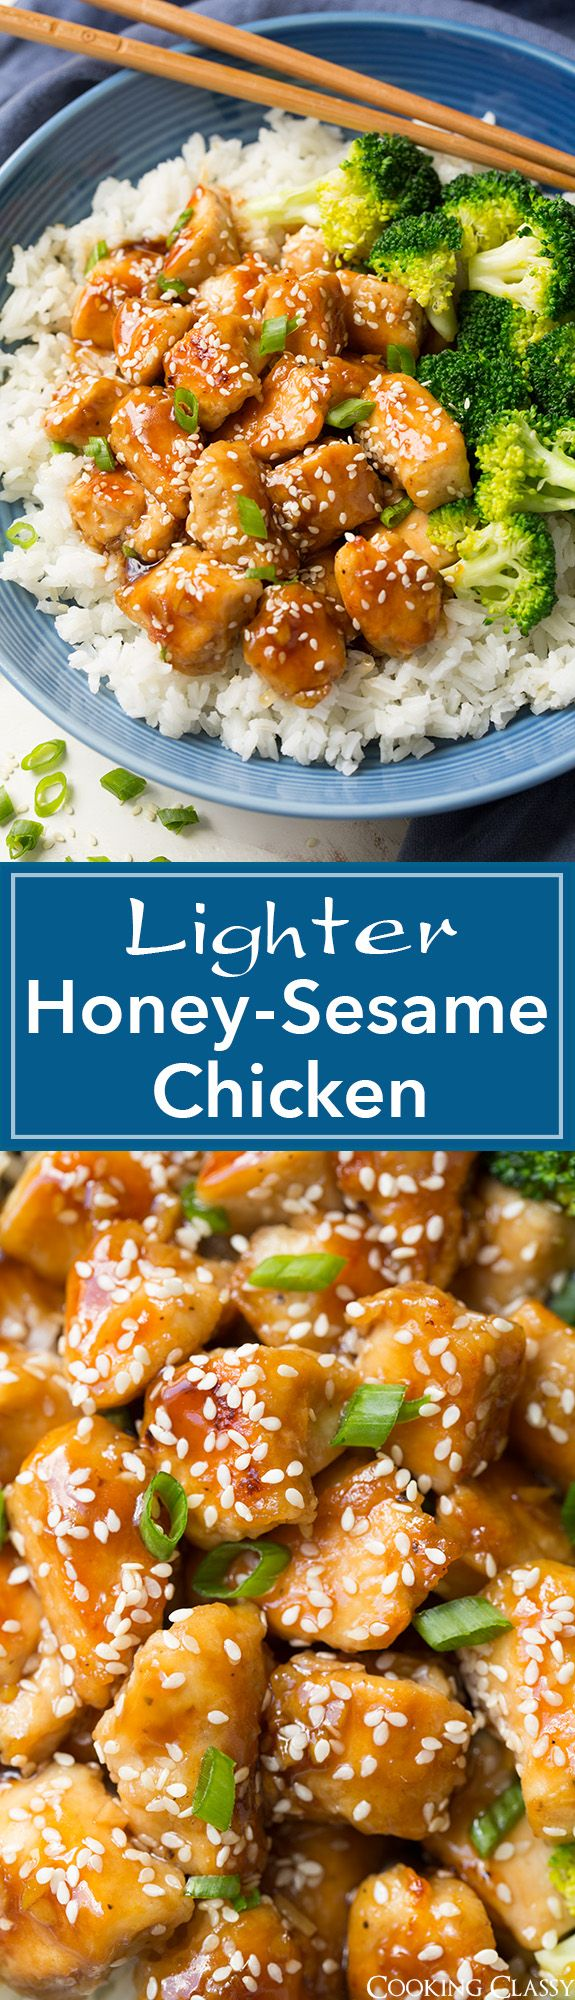 Lighter Honey-Sesame Chicken - you won't even miss the frying! Seriously delicious and full of flavor!